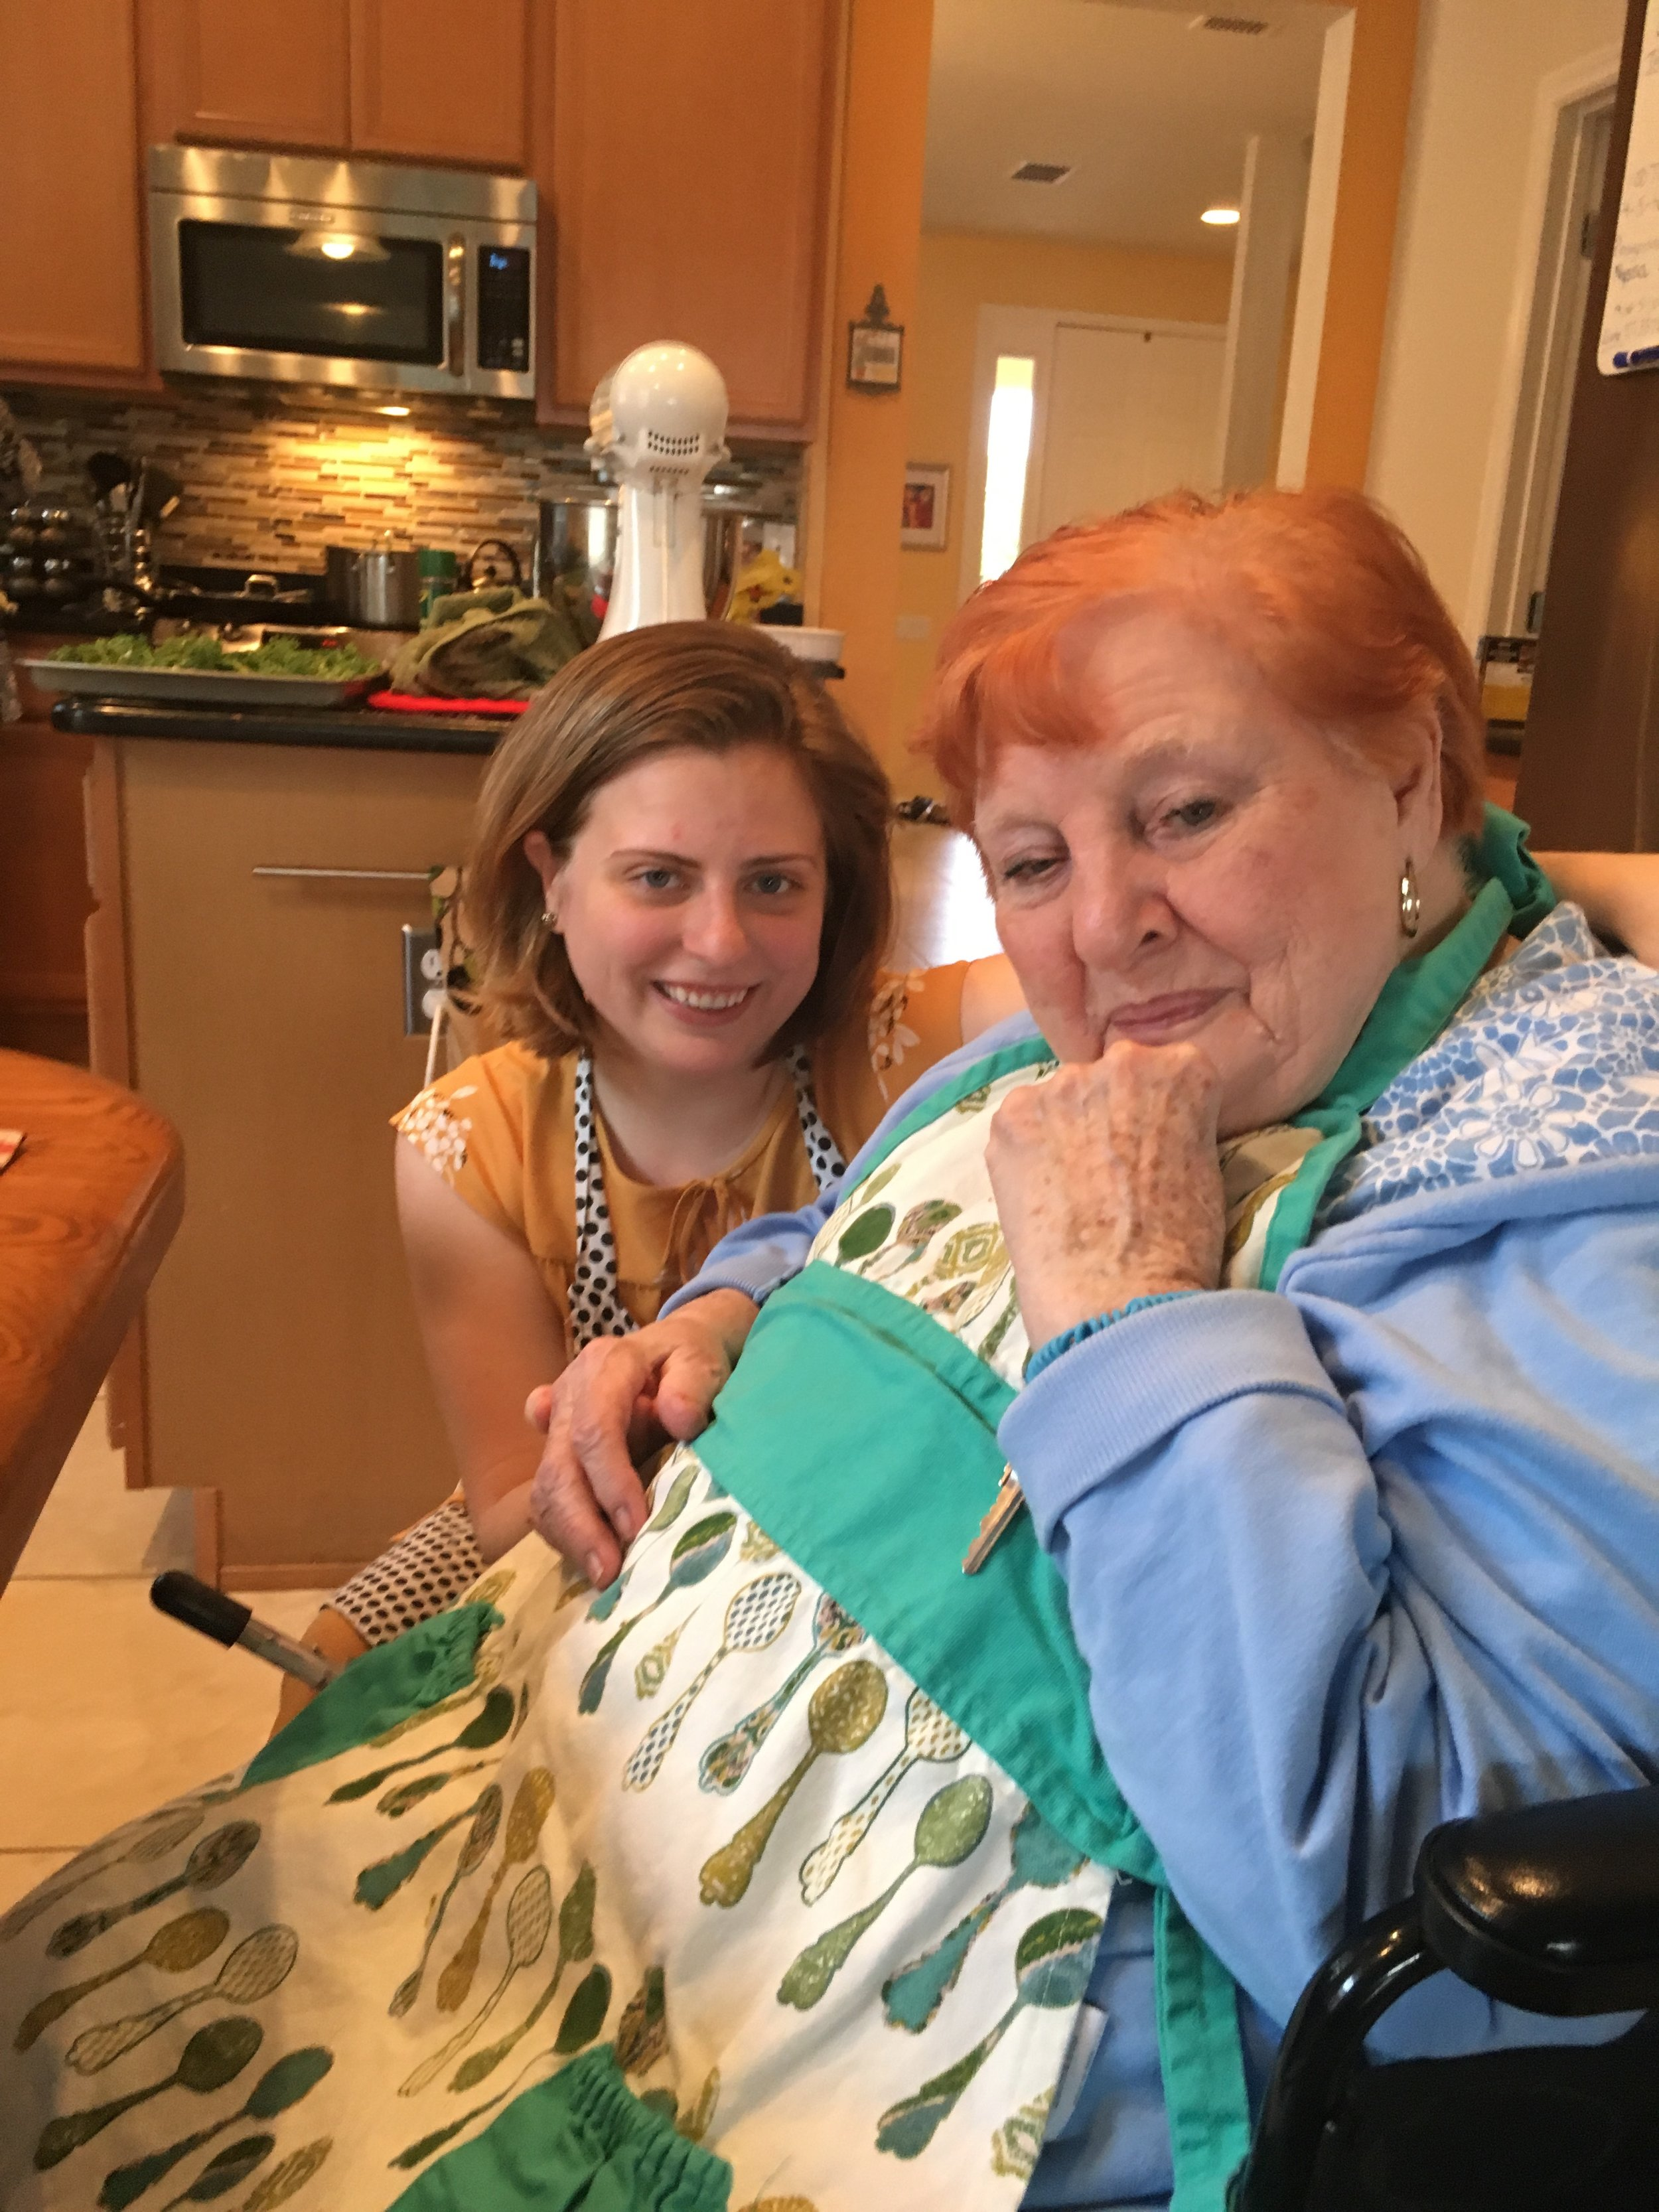 Showing the masses how authentic I am by posing with my 93 year old Nana. (J/K everyone. I just really love my Nana and wanted to share this cute pic of us because Nana is #goals. Eyeliner, red hair, signature pose... YAS QUEEN!